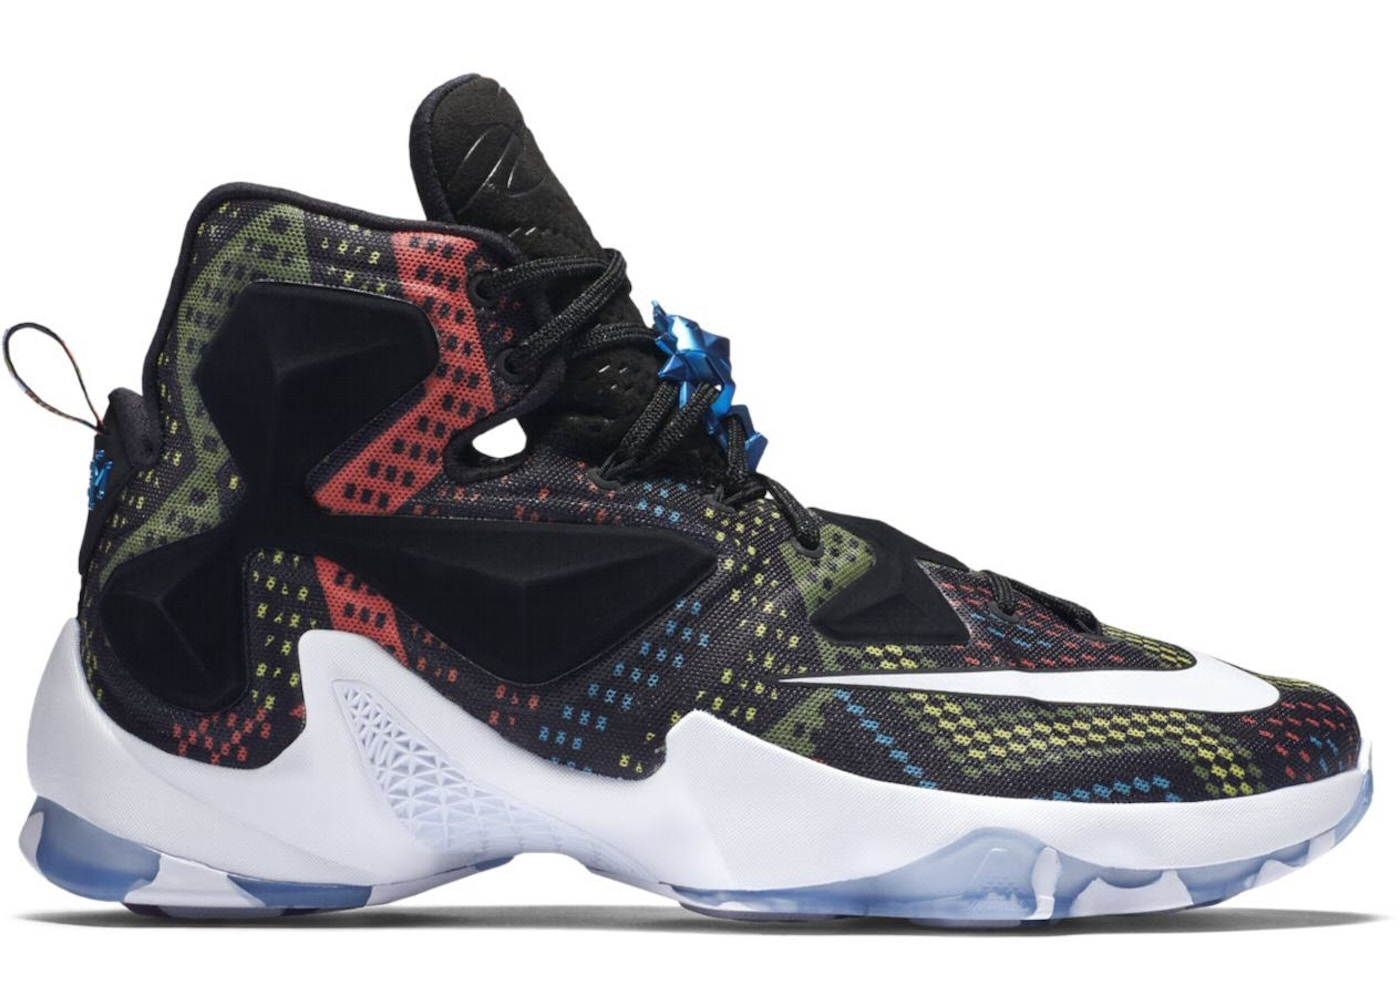 size 40 afdc5 ea64f Buy Nike LeBron 13 Shoes  Deadstock Sneakers